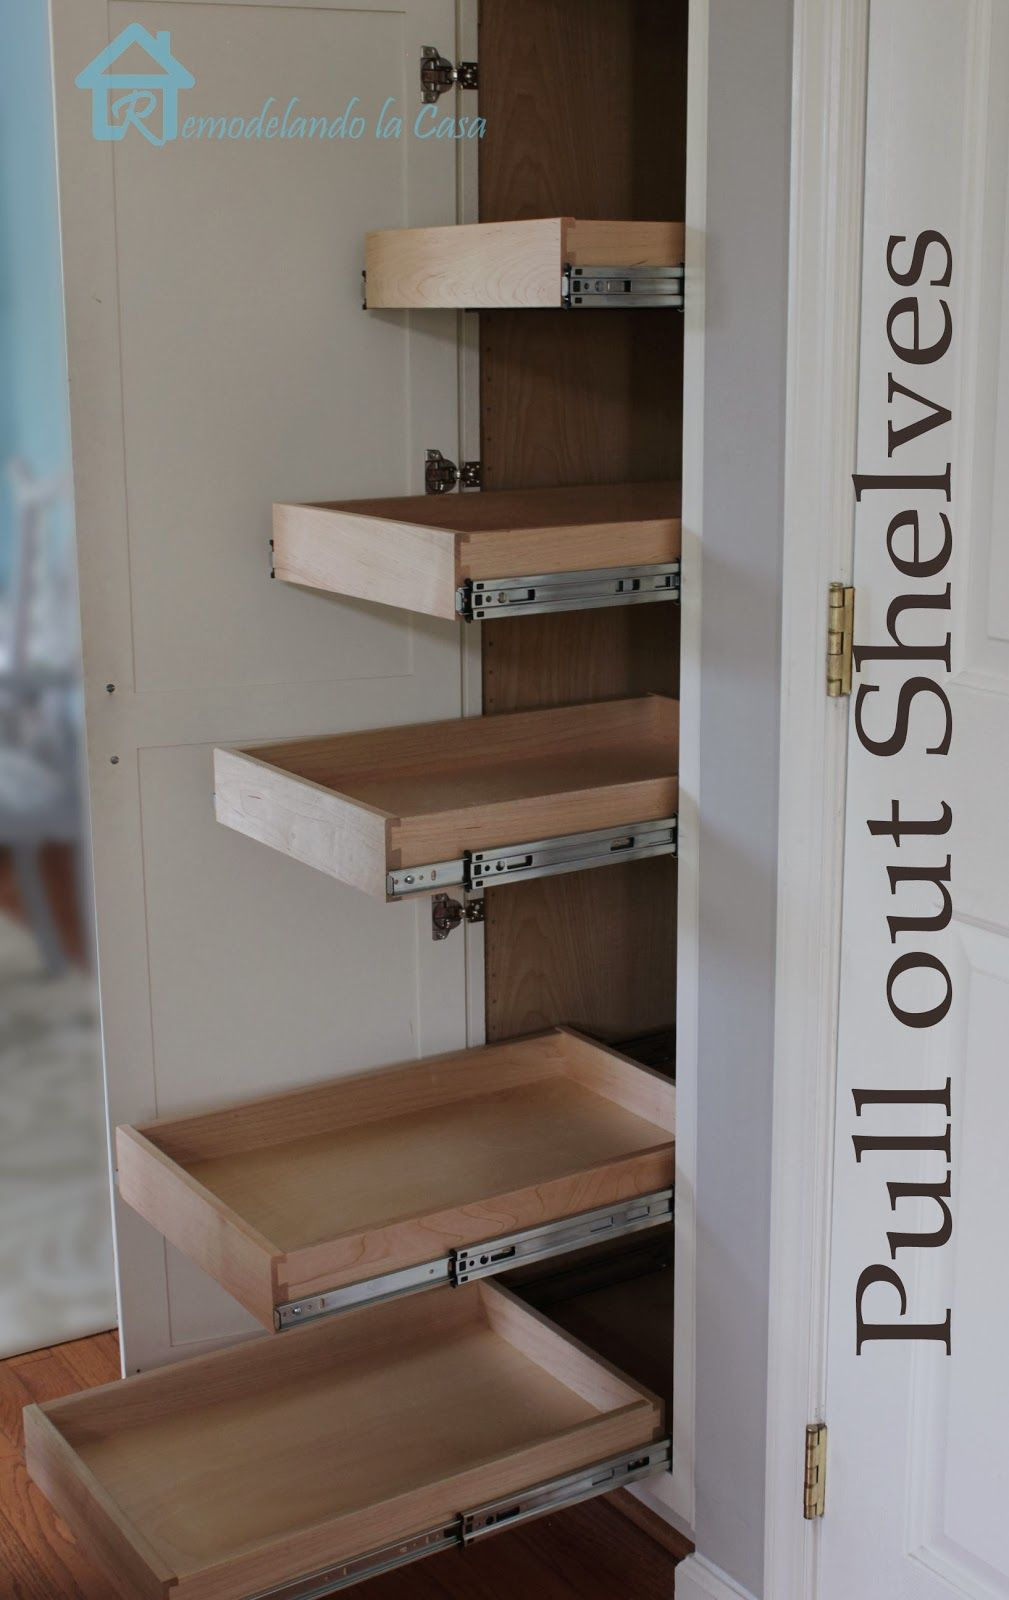 shelves out organizer cabinet home pull decorations install